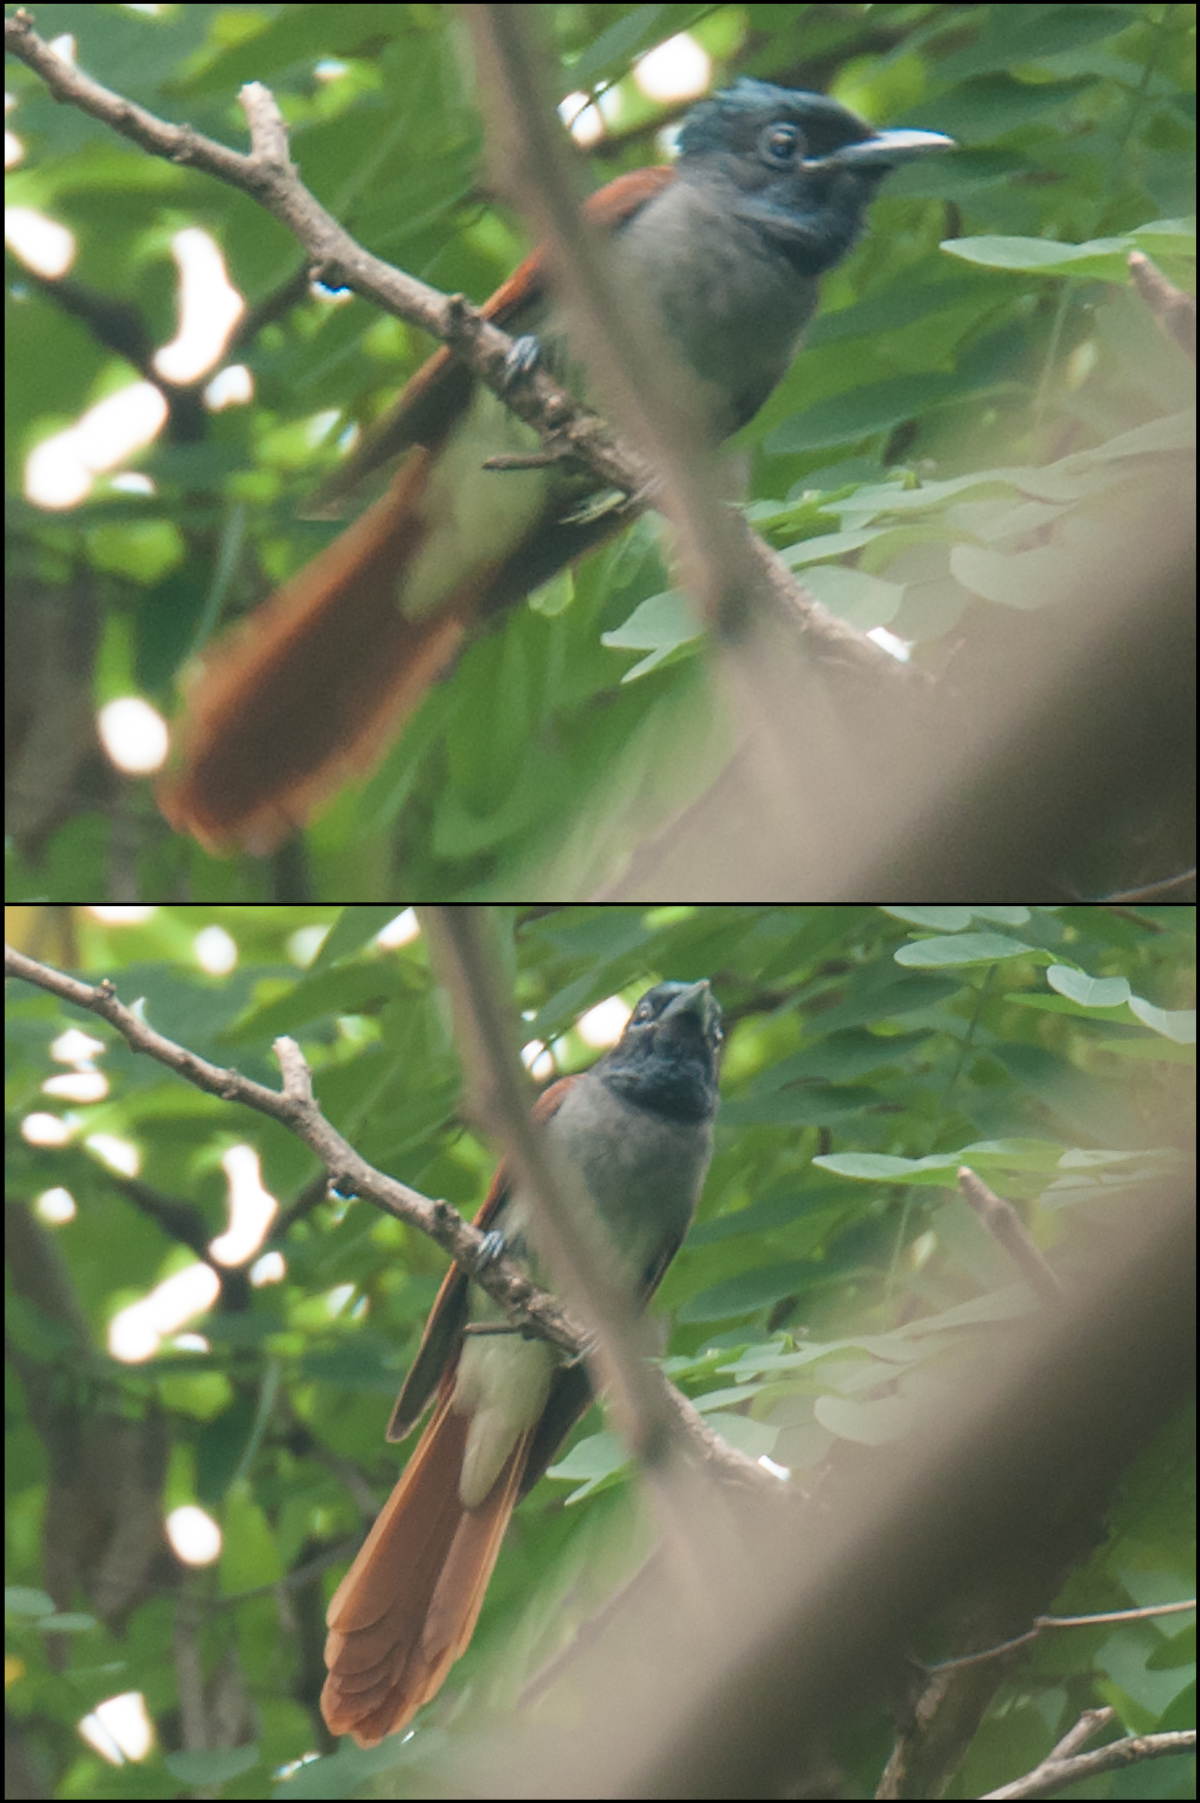 Amur Paradise Flycatcher, Laoshan, Jiangsu, 4 July 2009. Photo by Craig Brelsford.